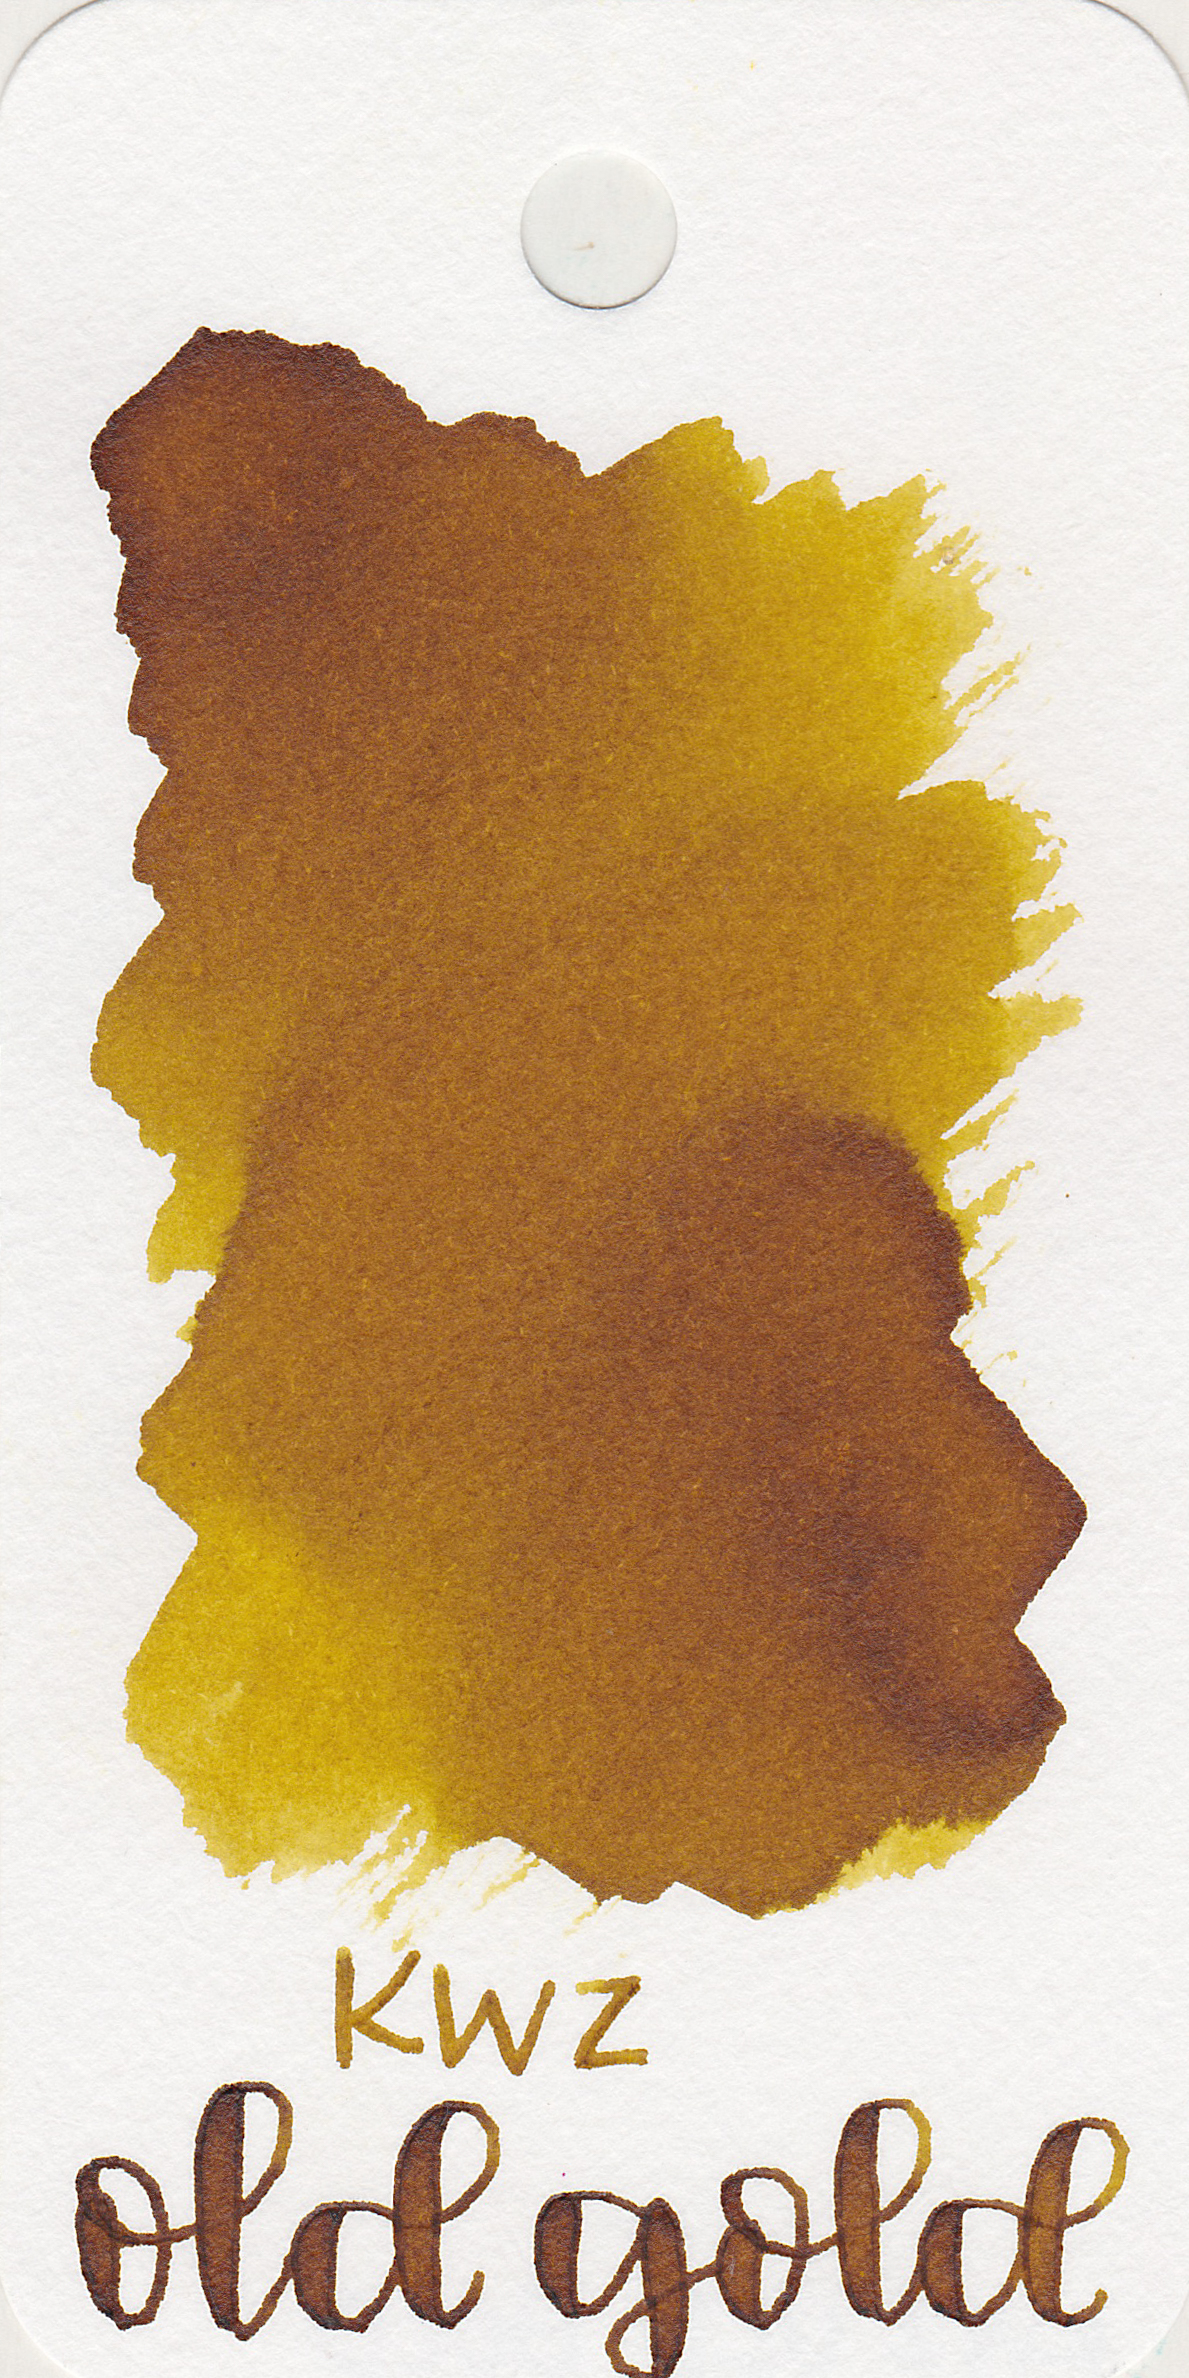 The color: - Old Gold ranges from a dark yellow to a brown color. It's almost a mustard color.